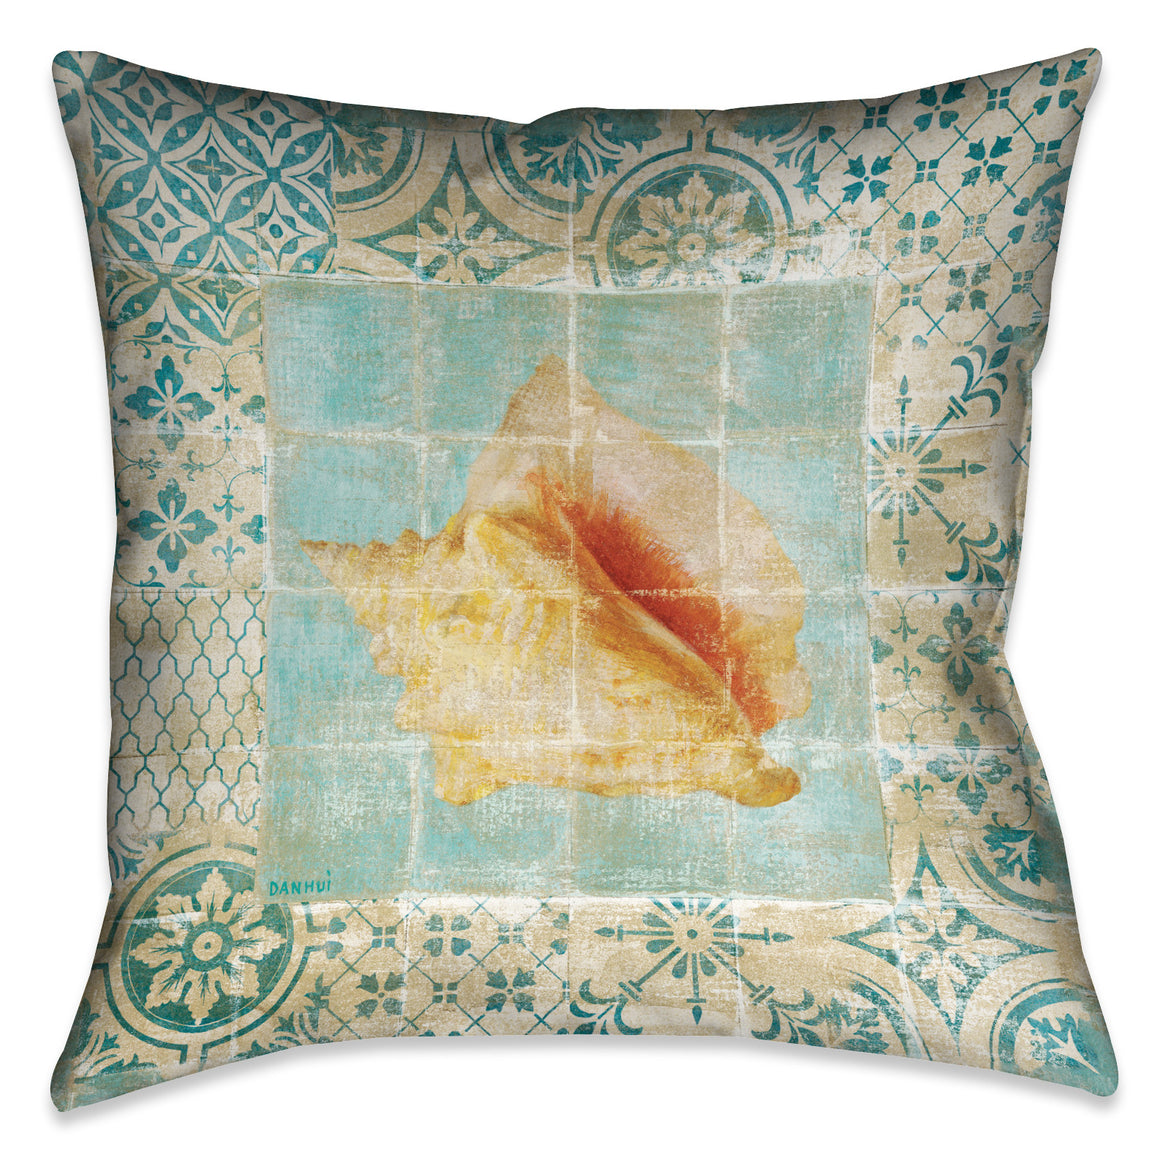 Shell Tiles IV (Blue) Indoor Decorative Pillow